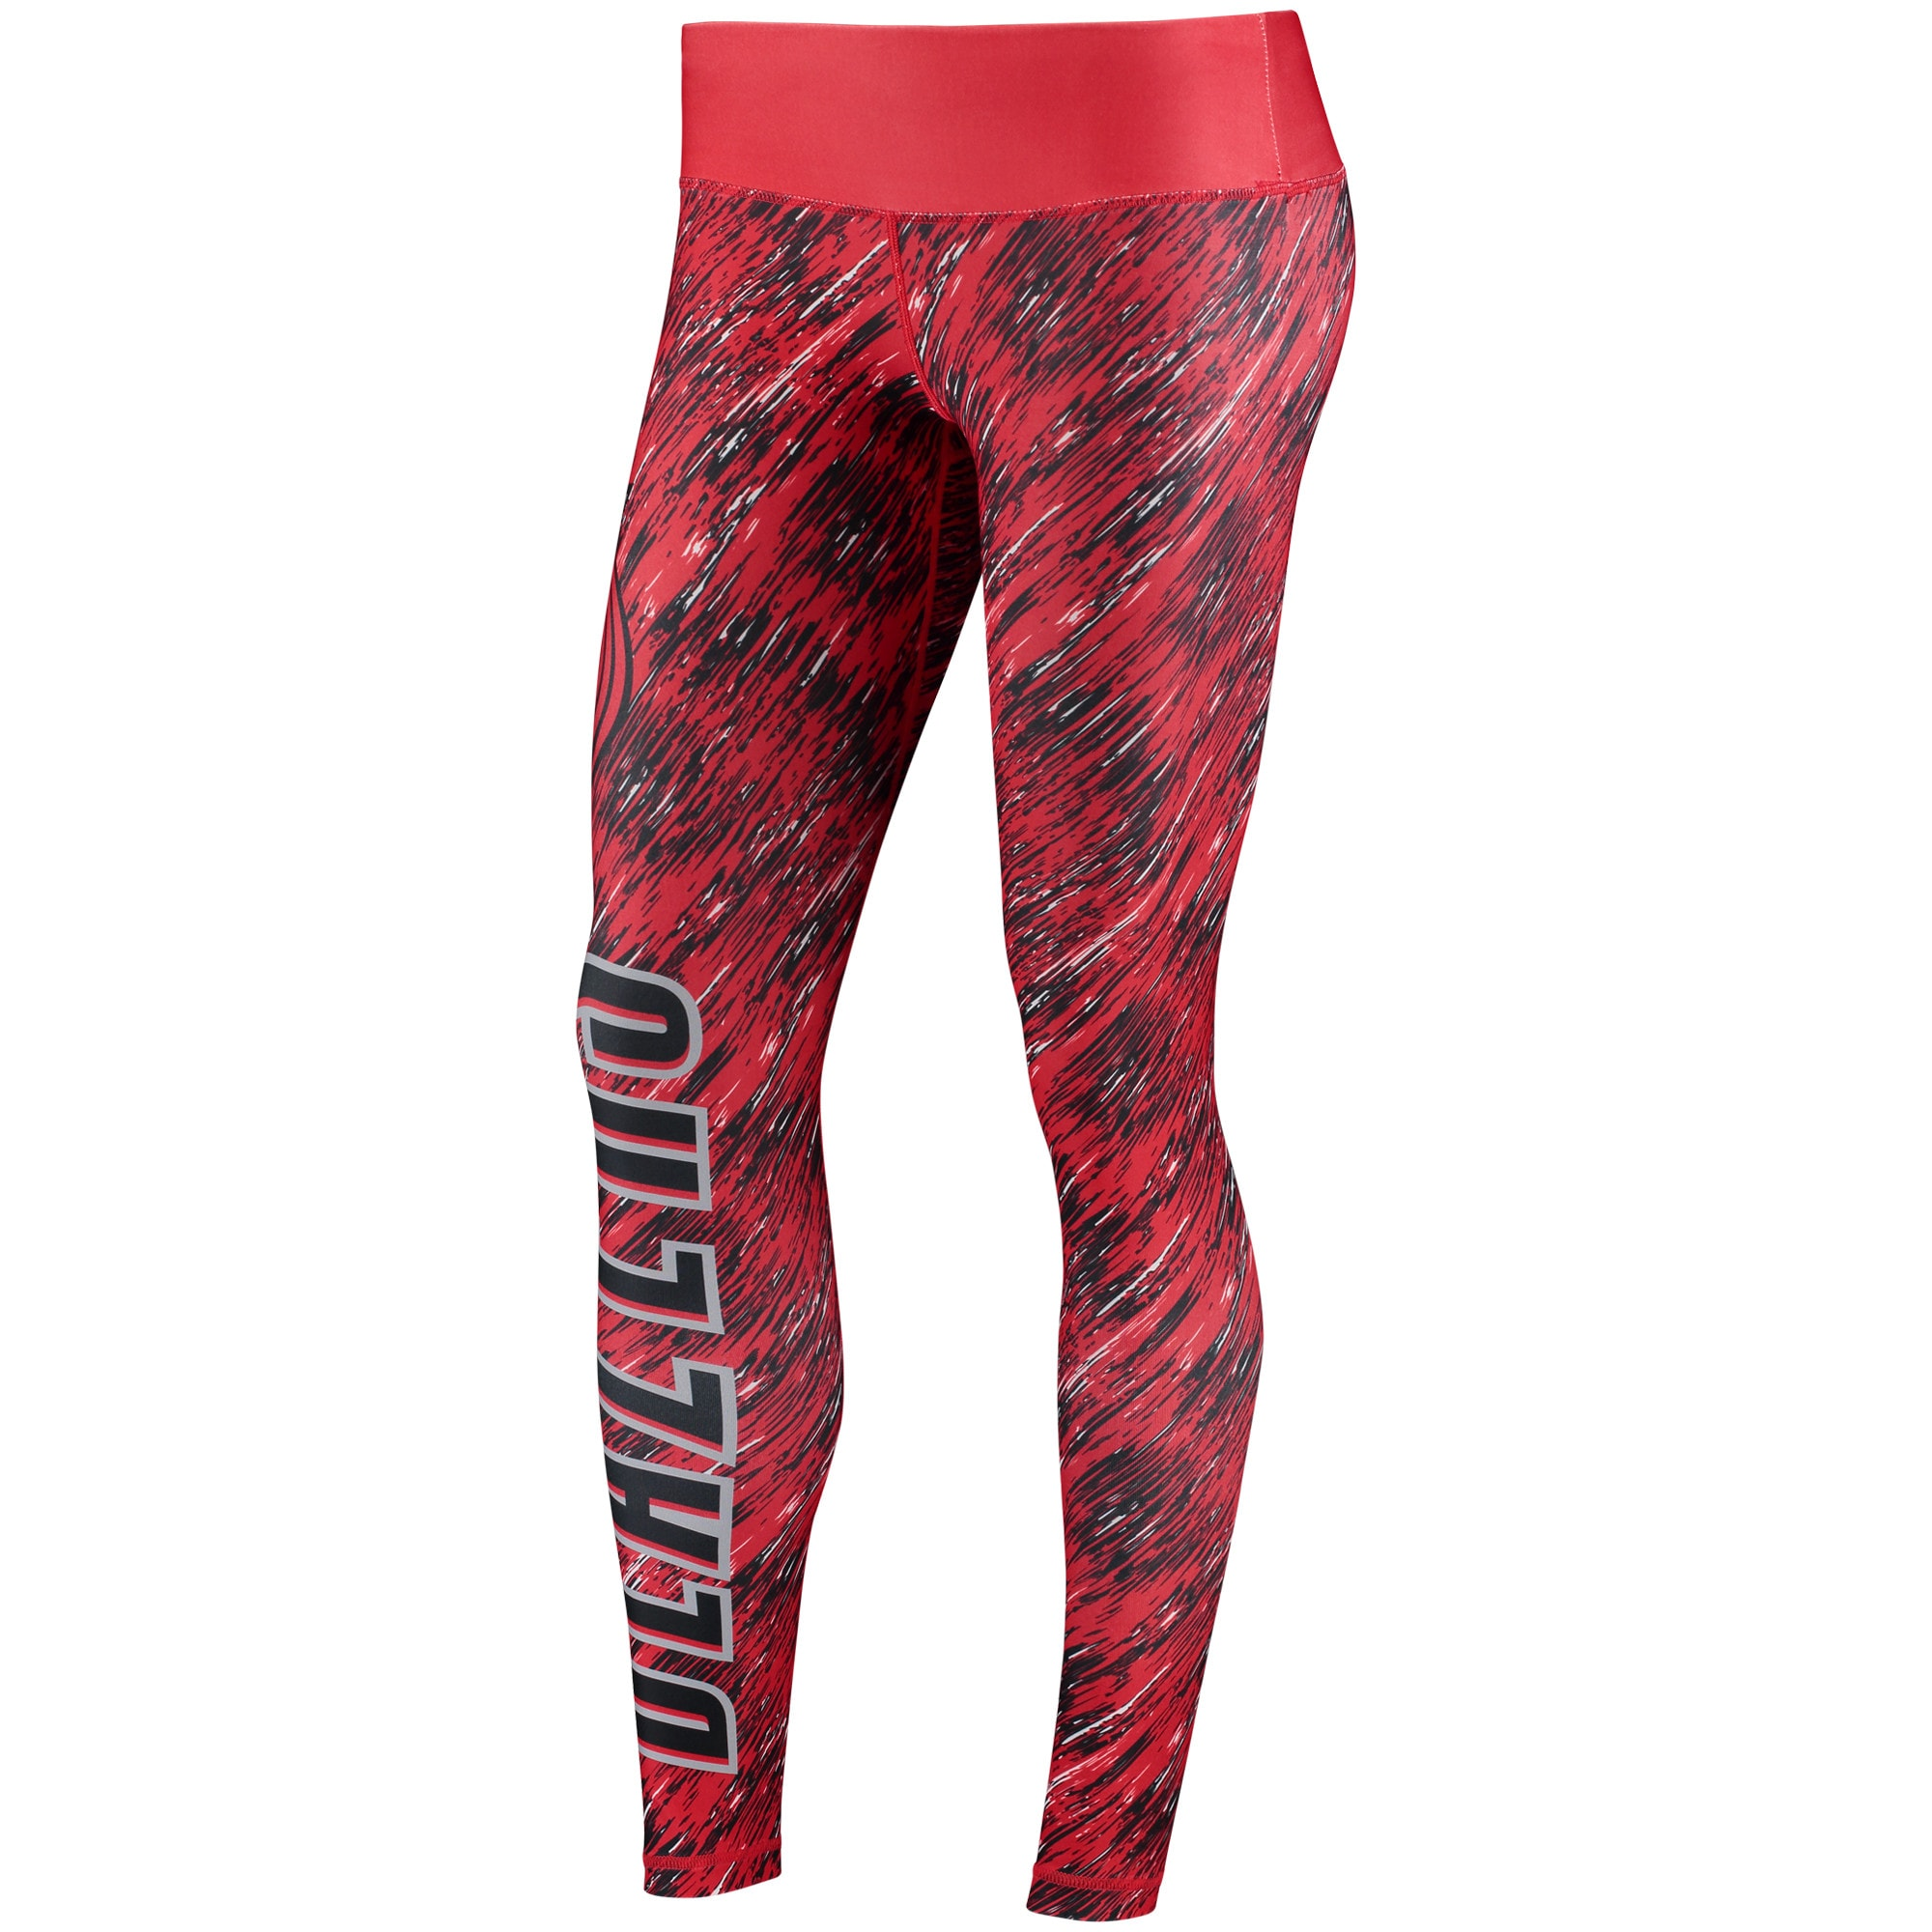 Portland Trail Blazers Women's Static Rain Leggings - Red